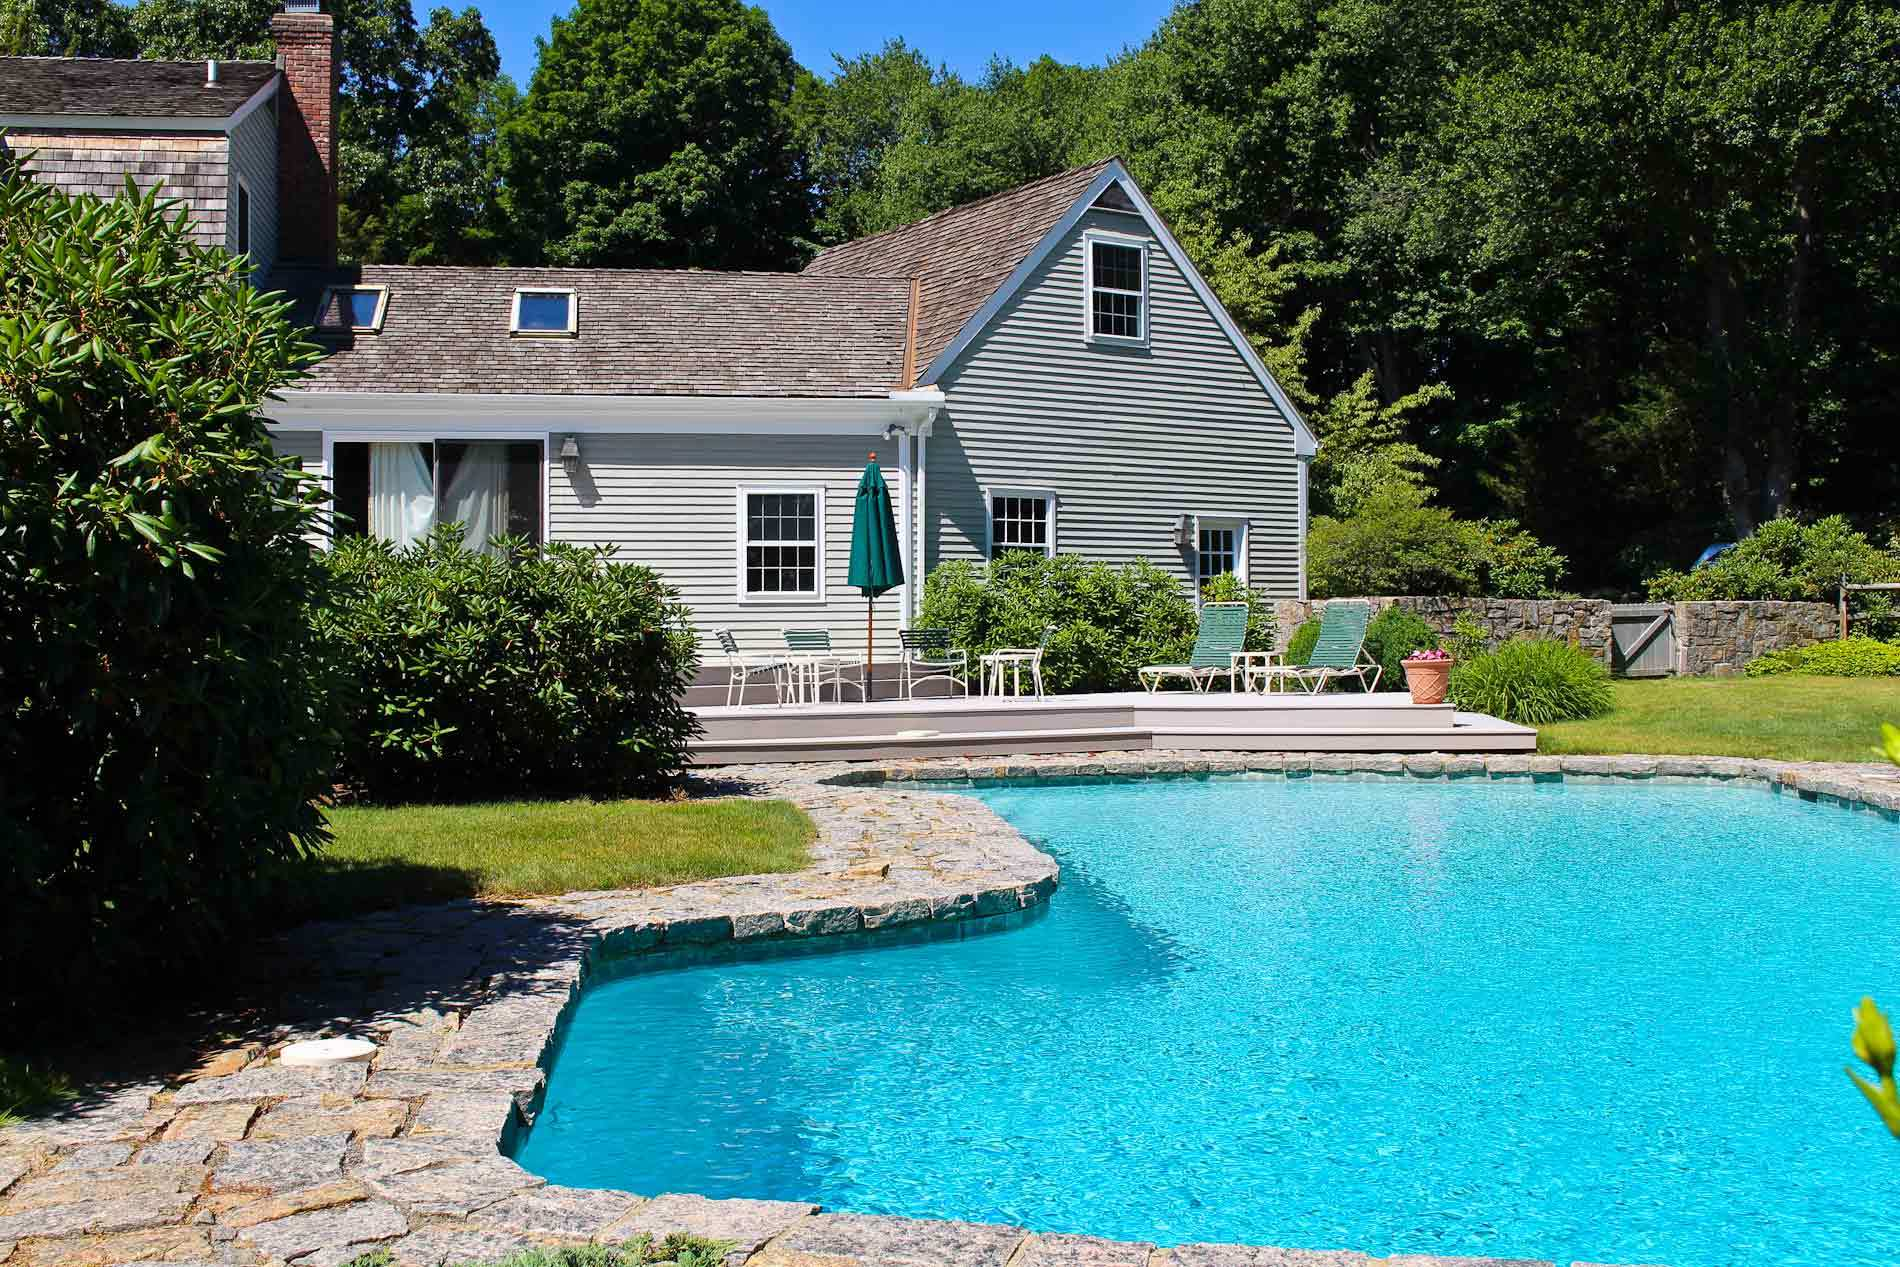 Homes With Swimming Pool For Sale In Easton Ct Find And Buy Houses